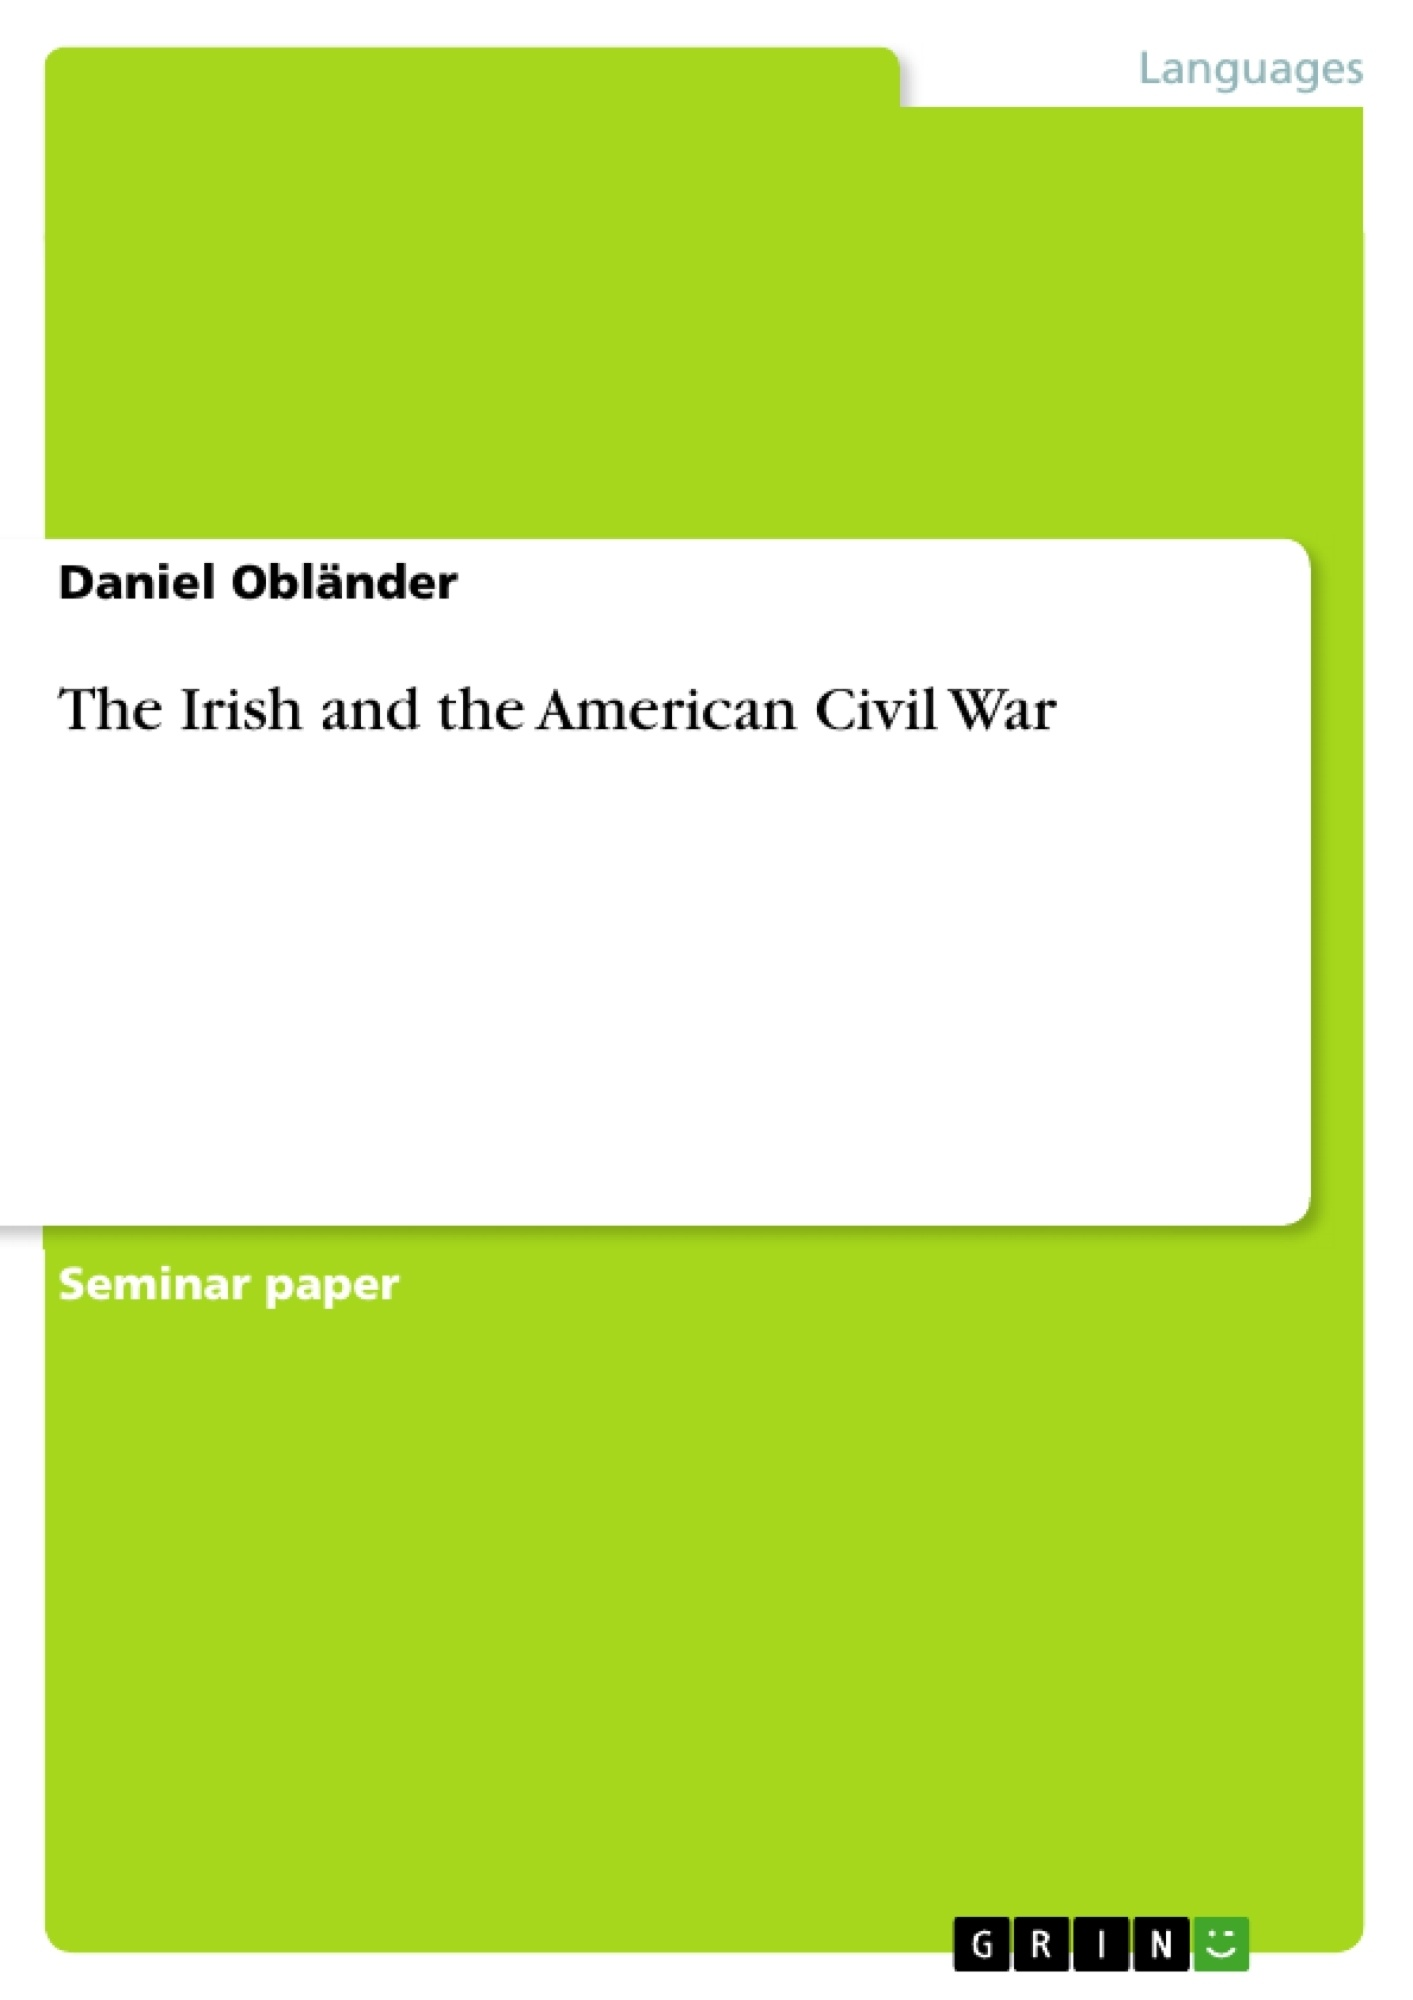 the 1975 lebanese civil war essay The lebanese civil war (1975-1990): causes and costs of conflict by c2010 zakaria mounir mohti submitted to the department of international studies.